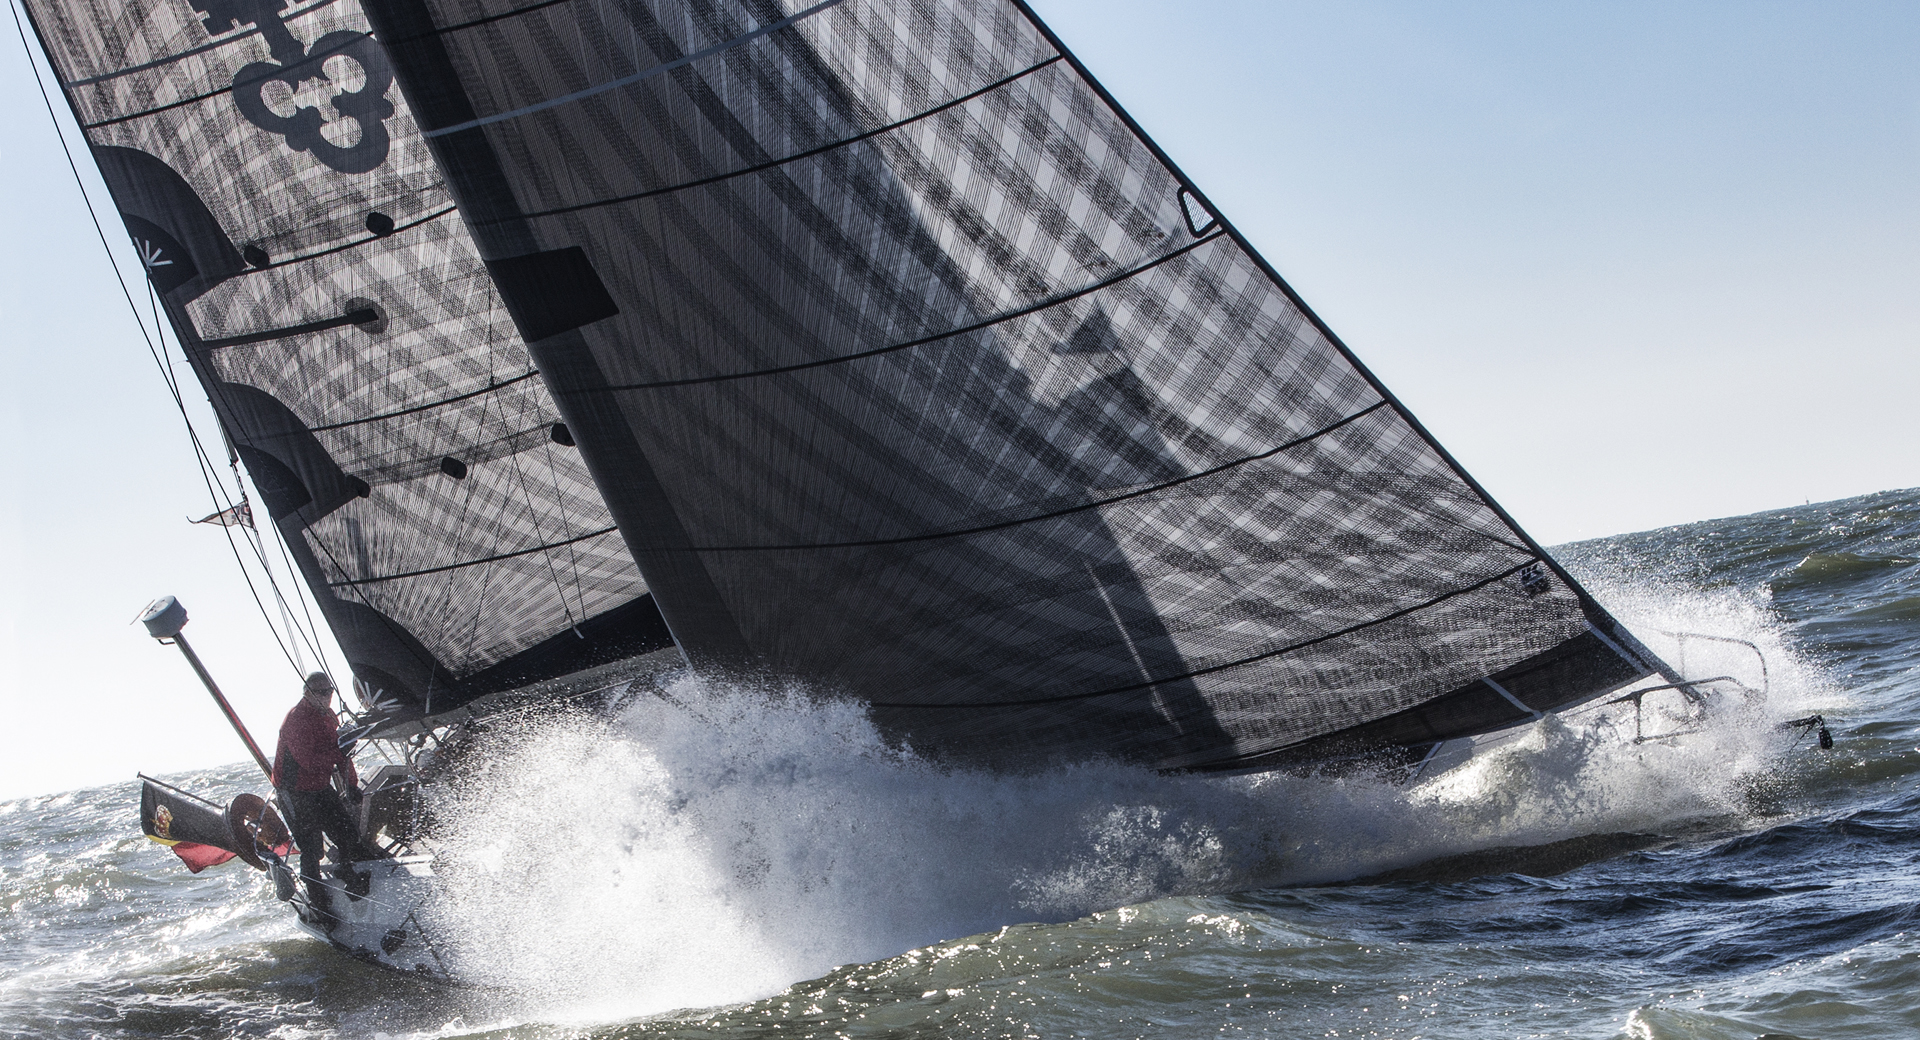 Depending on the boat size, performance level, weight and price, carbon X-Drive load-path fibers can be bonded to laminates reinforced with aramid scrims as shown above, or laminates reinforced with polyester scrims. Both laminates can gain chafe protection with a taffeta layer; the extra longevity comes at the price of extra weight and cost.